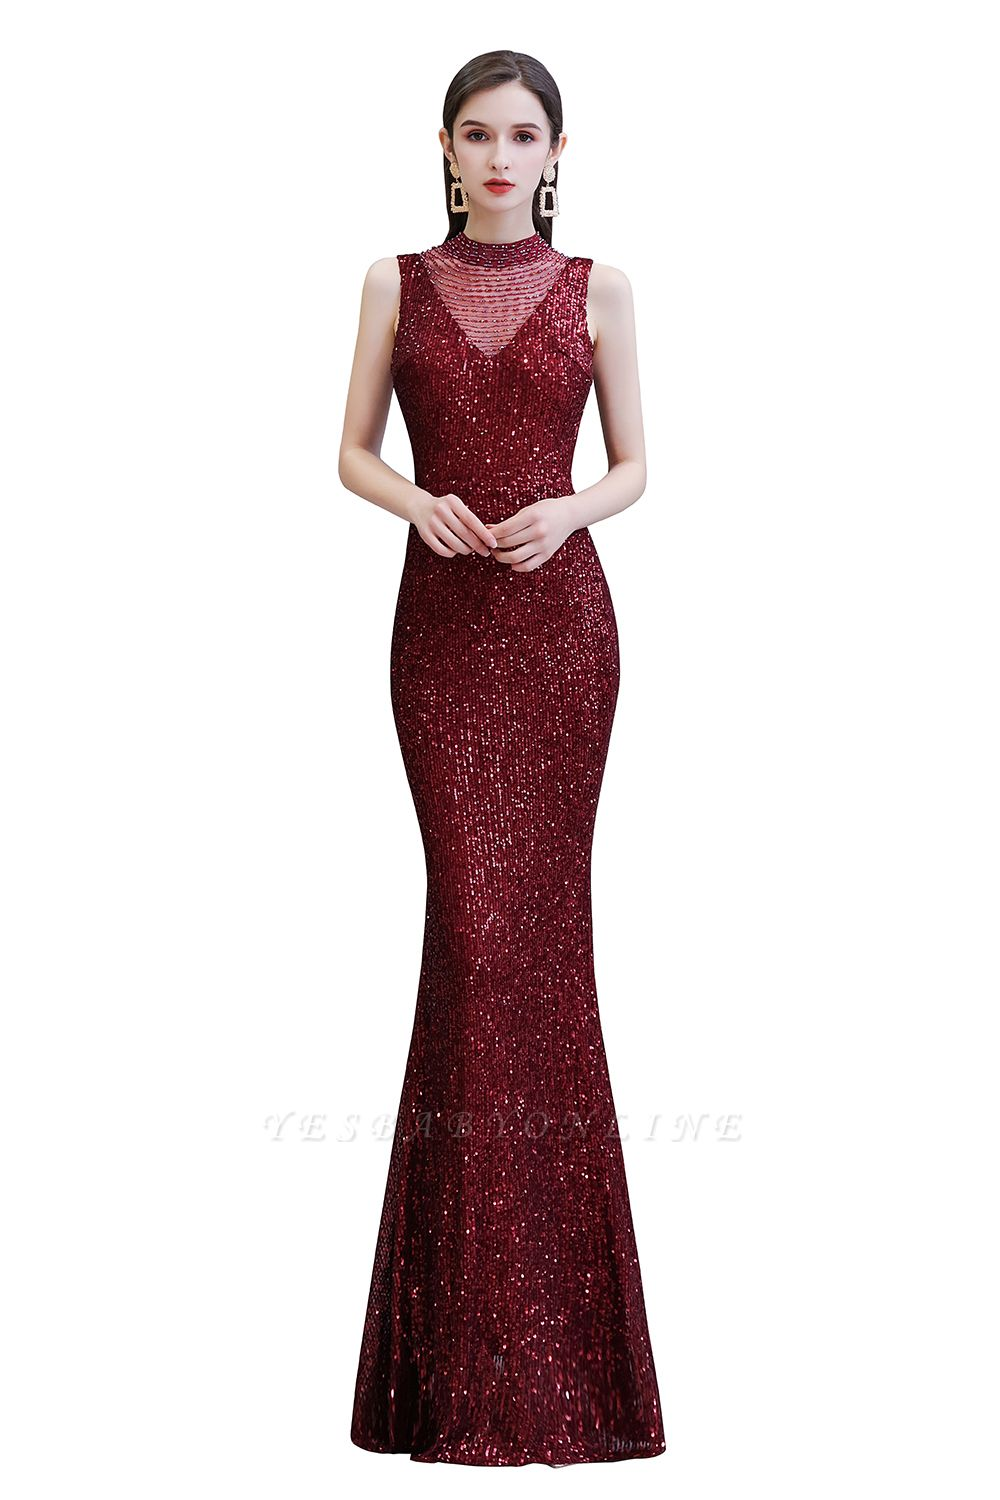 High Neck Sleeveless Floor Length Sparkly Sequin Fitted Prom Dresses